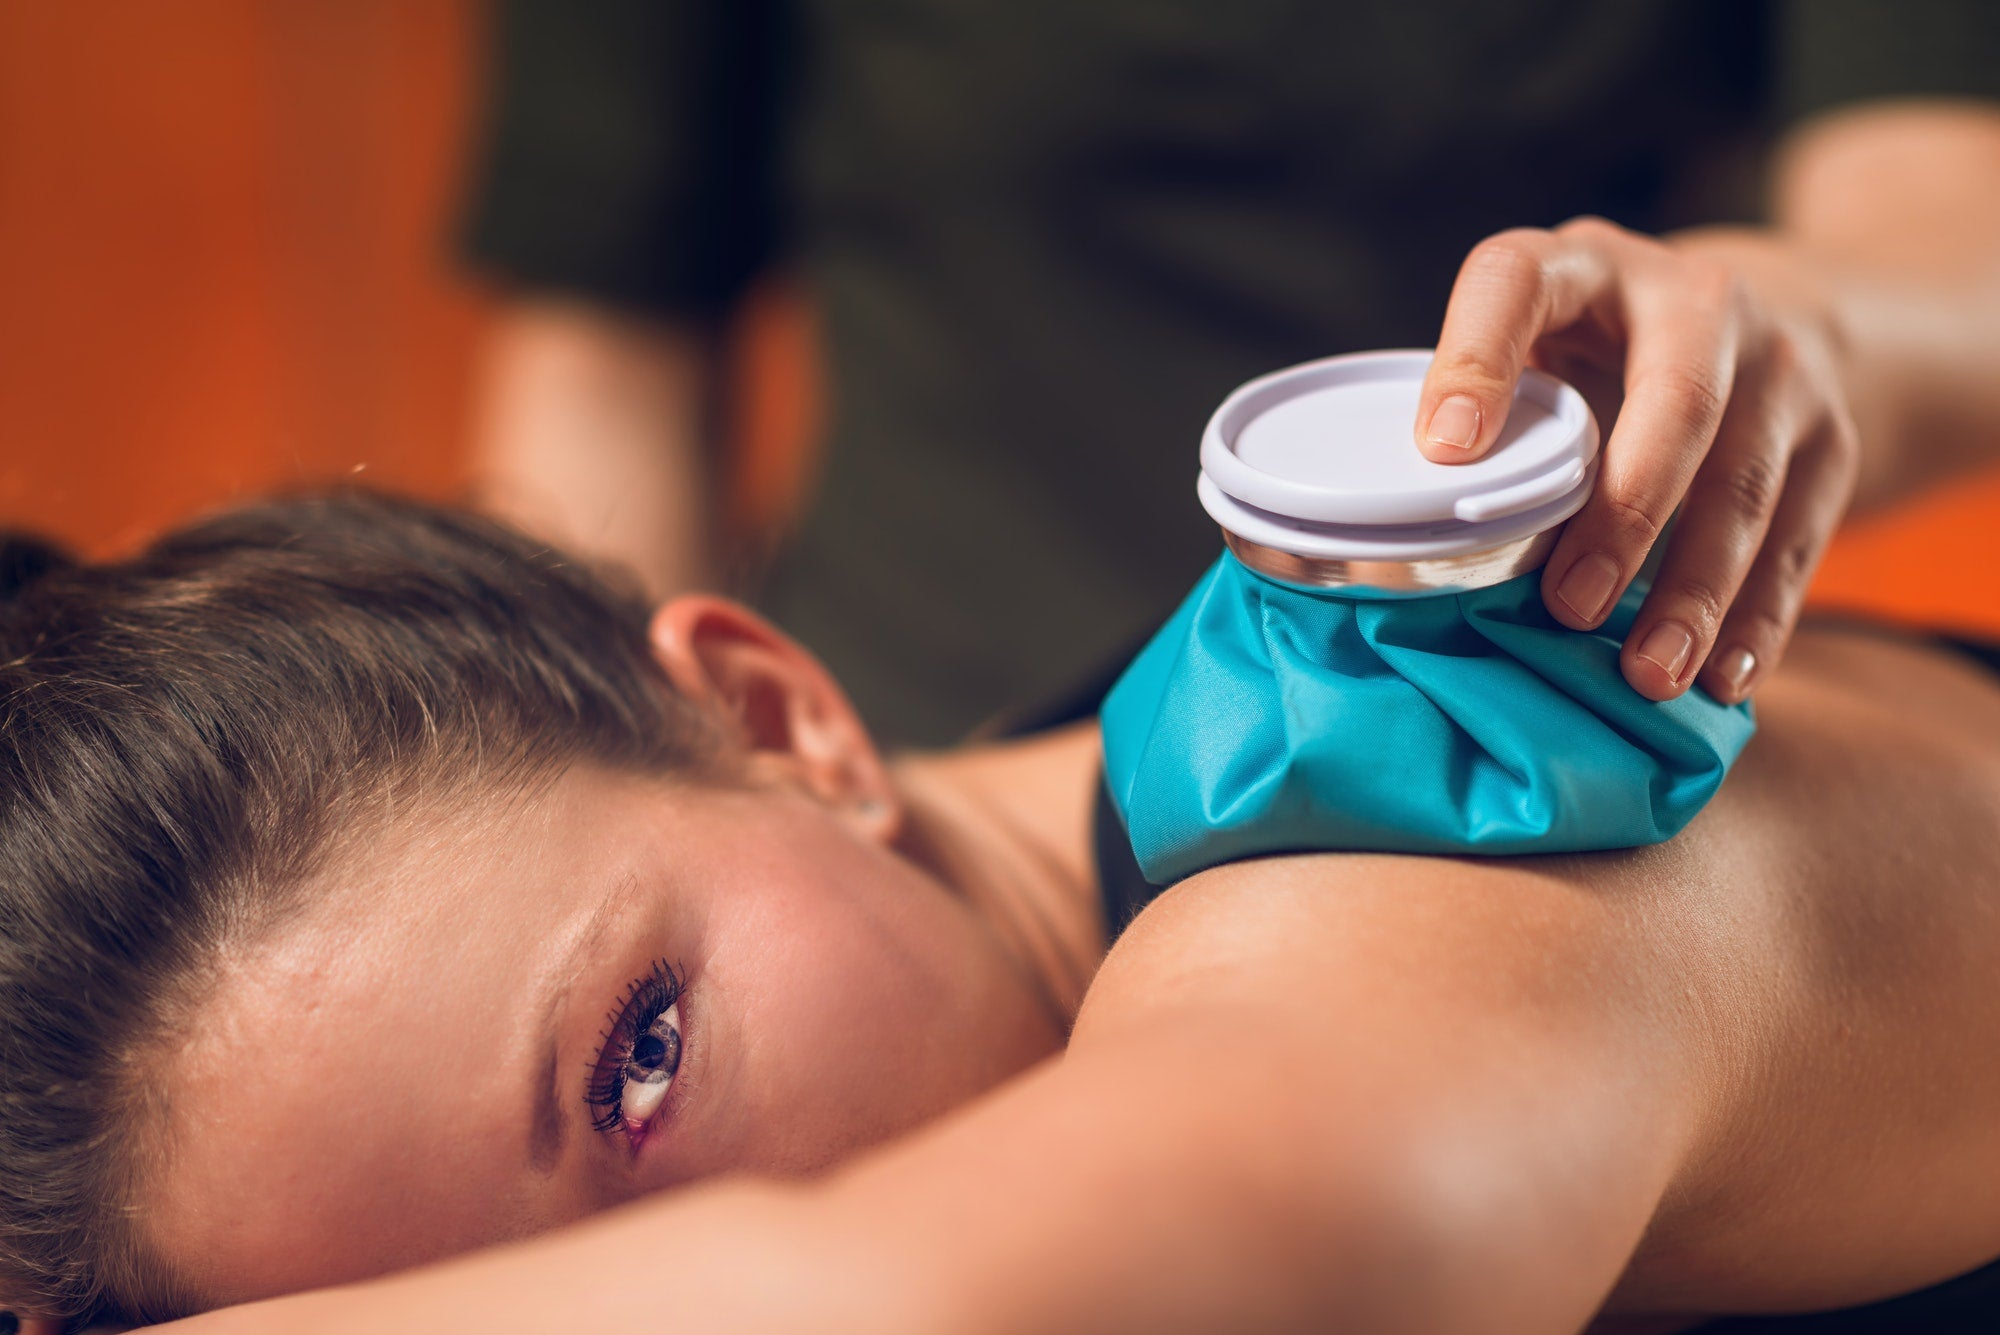 A woman using an ice pack.